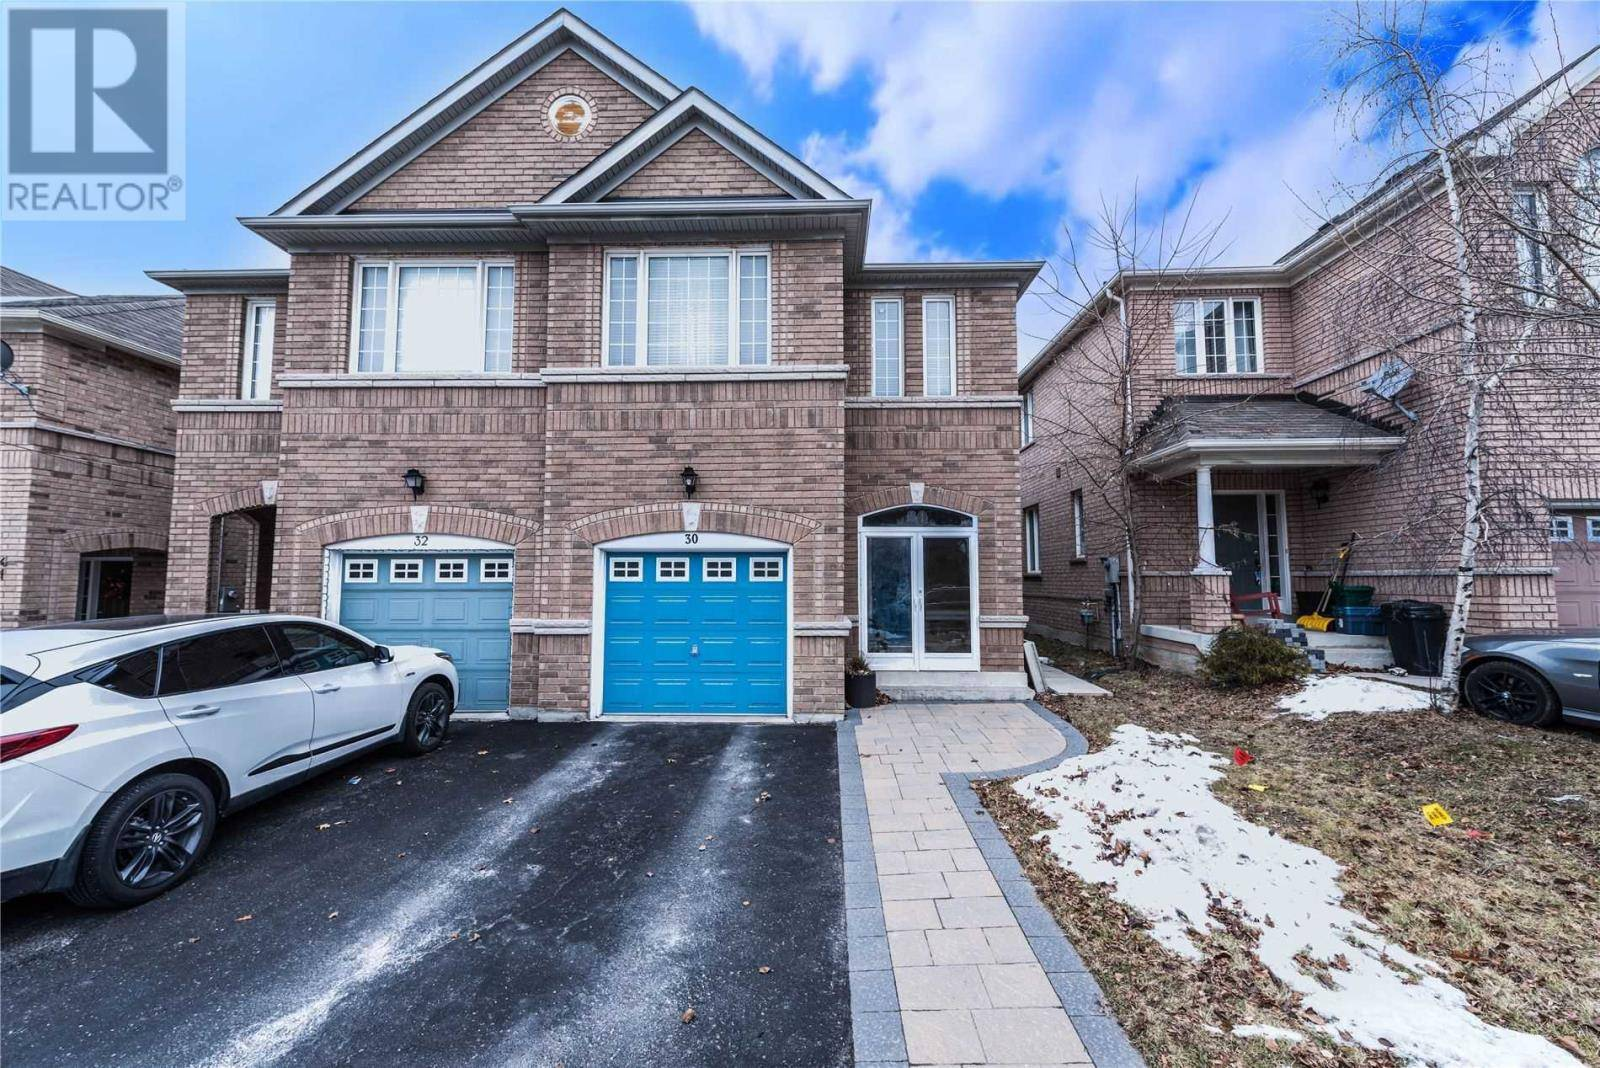 Townhouse for sale at 30 Blue Meadow Ct Markham Ontario - MLS: N4646939